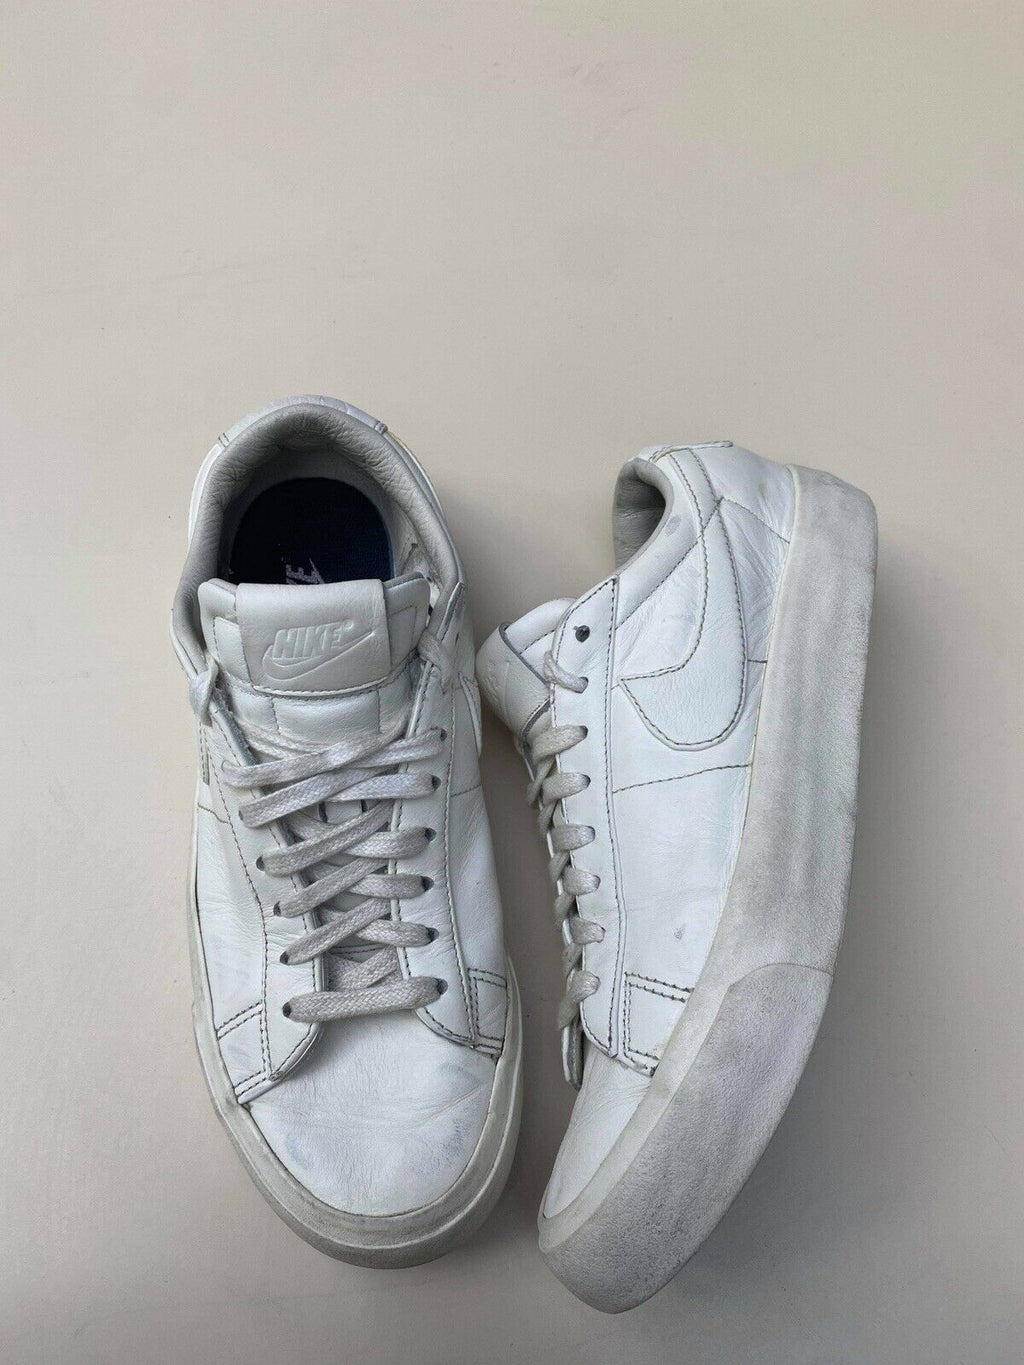 Nike Air Force 1 Womens Size 8 White Sneakers Low Leather Lace Athletic Shoes